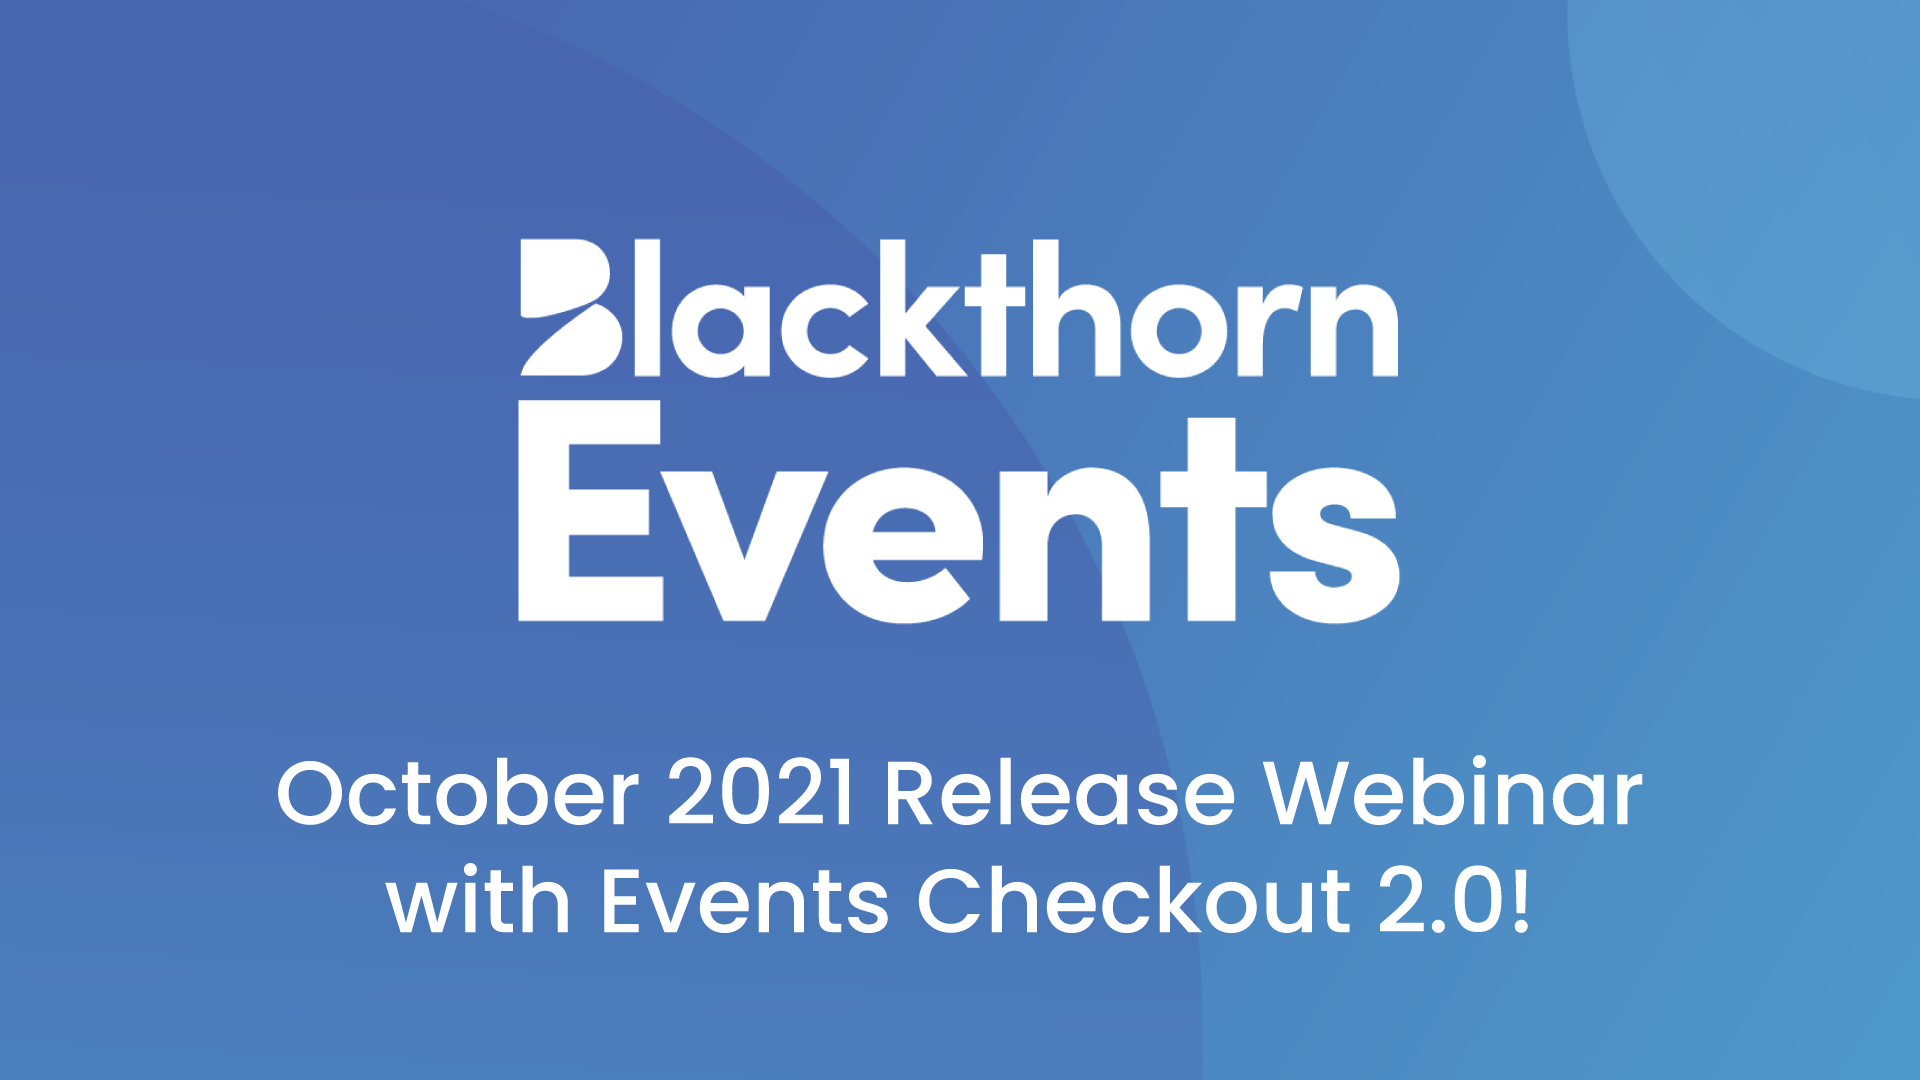 Events Checkout 2.0 is here! | October 2021 Release Webinar